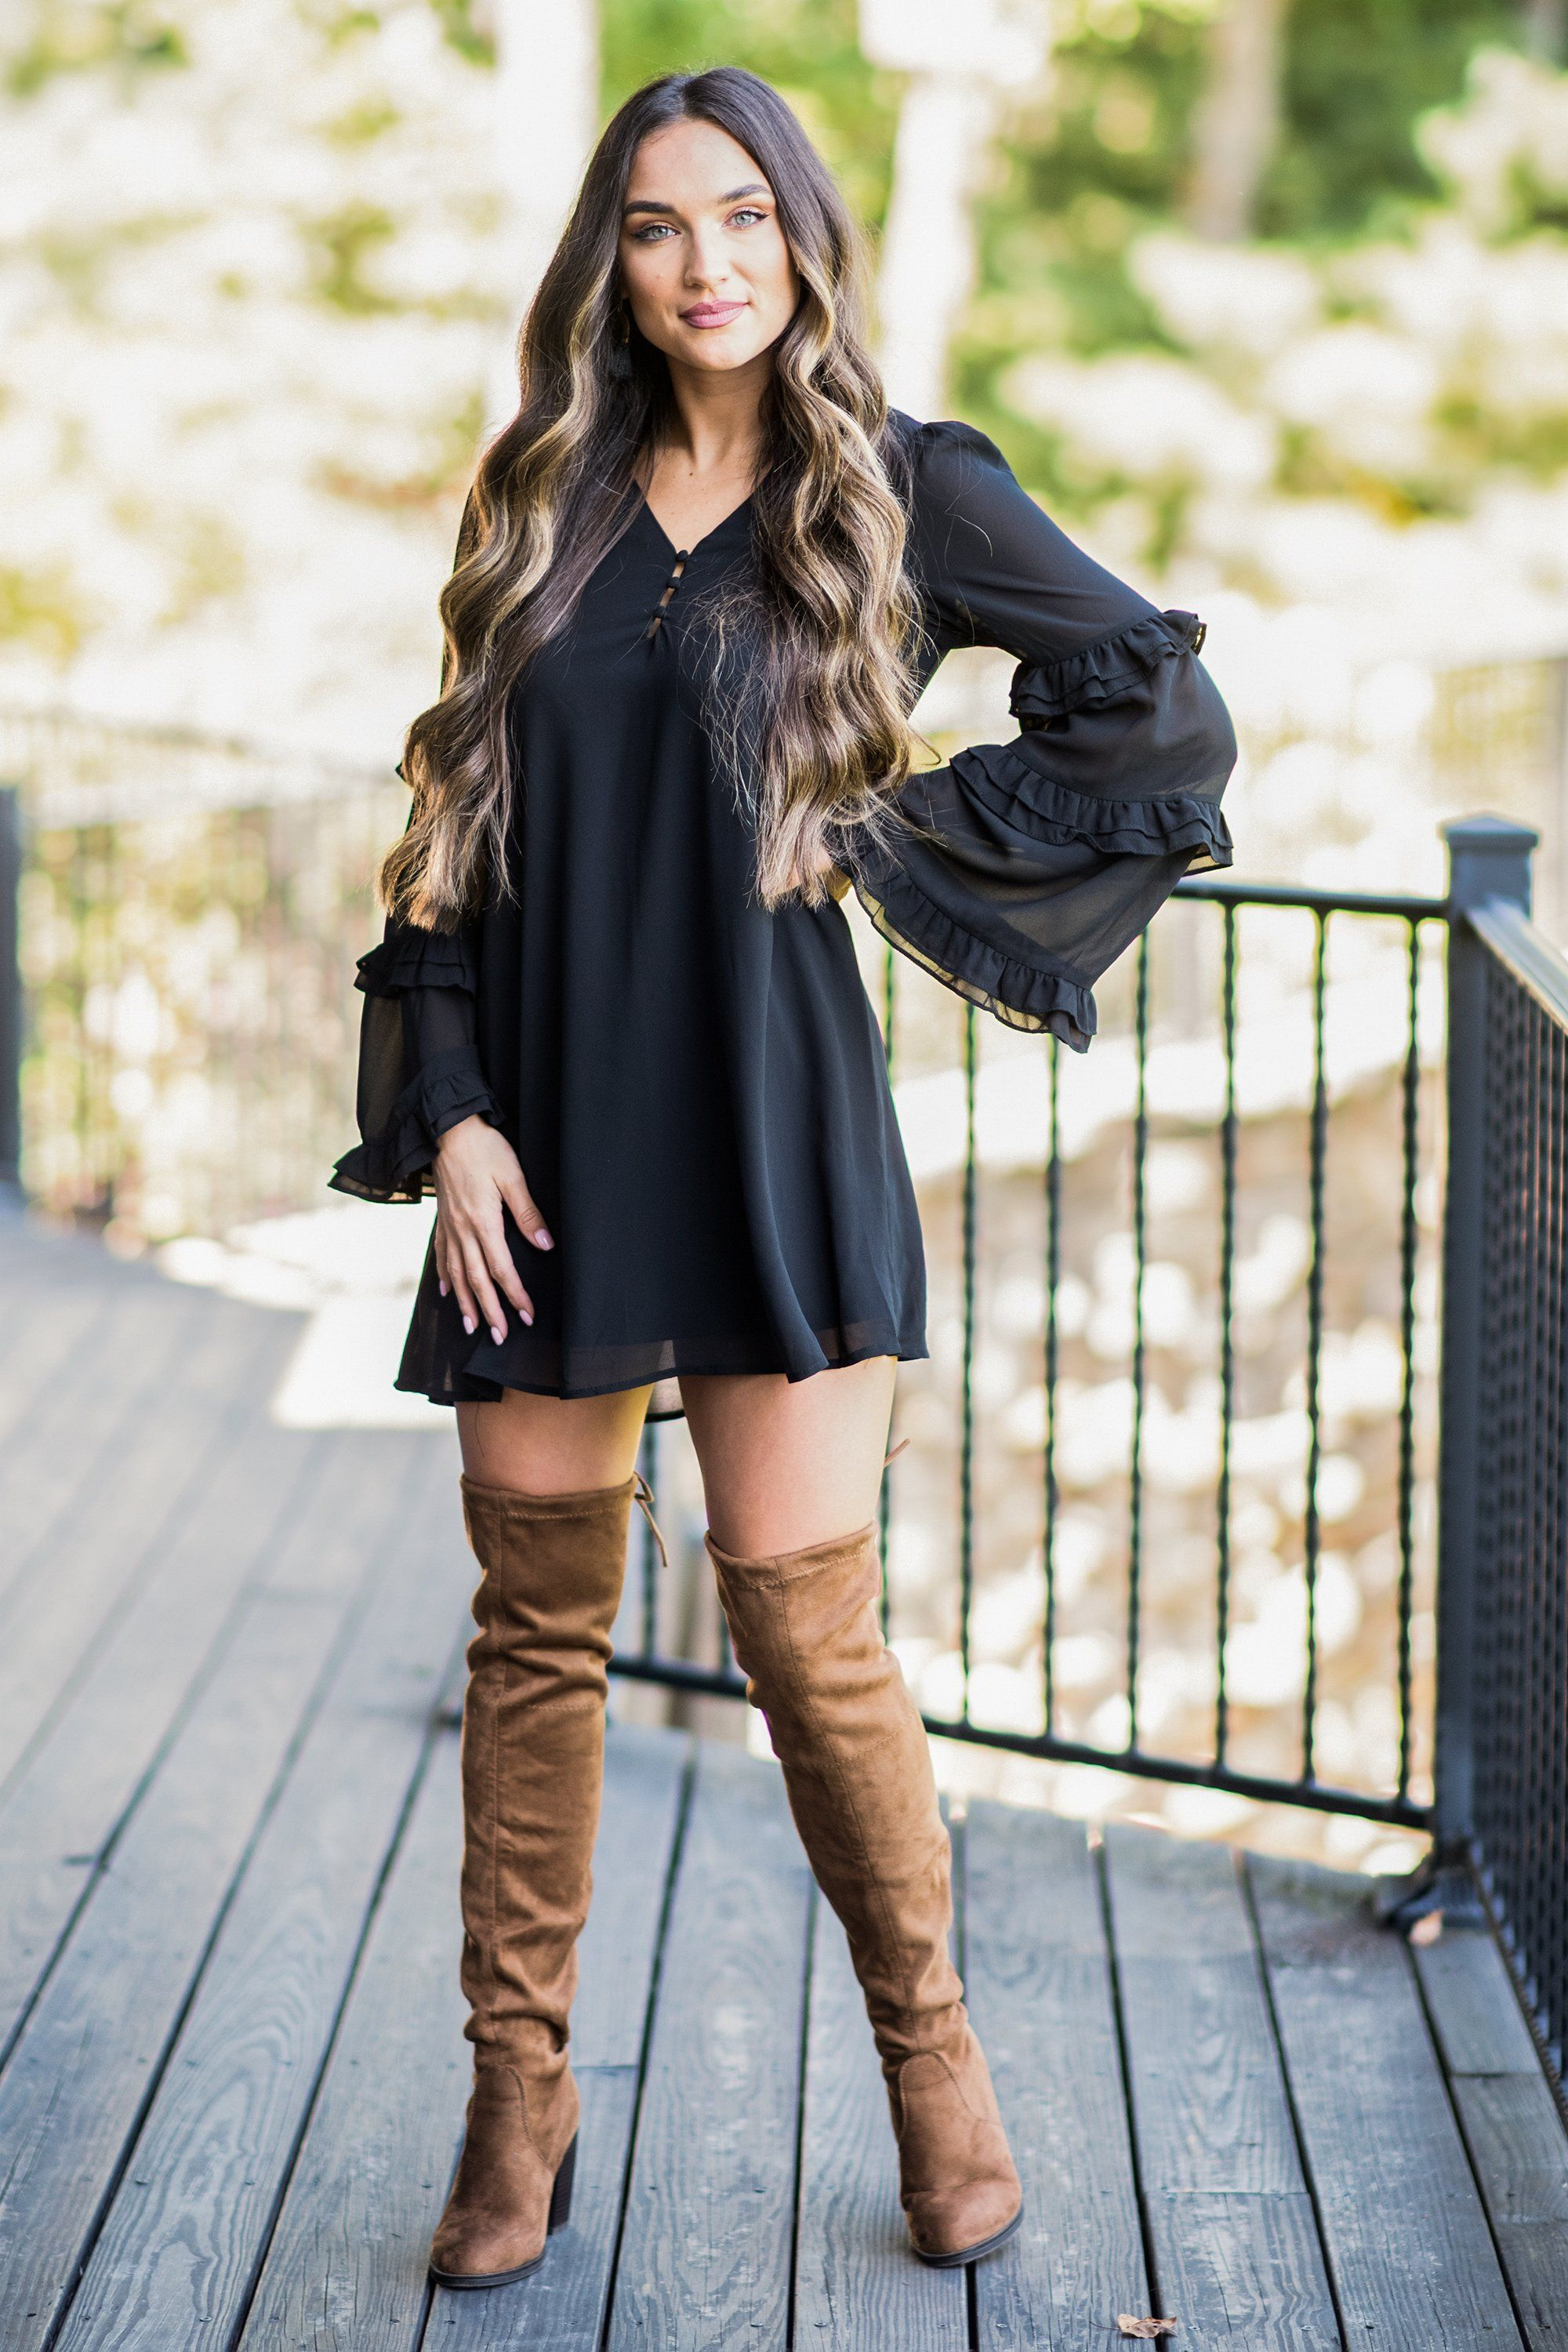 The Way You Move Black Ruffled Dress Fall Boots Outfit Dress With Boots Fashion [ 3000 x 2000 Pixel ]